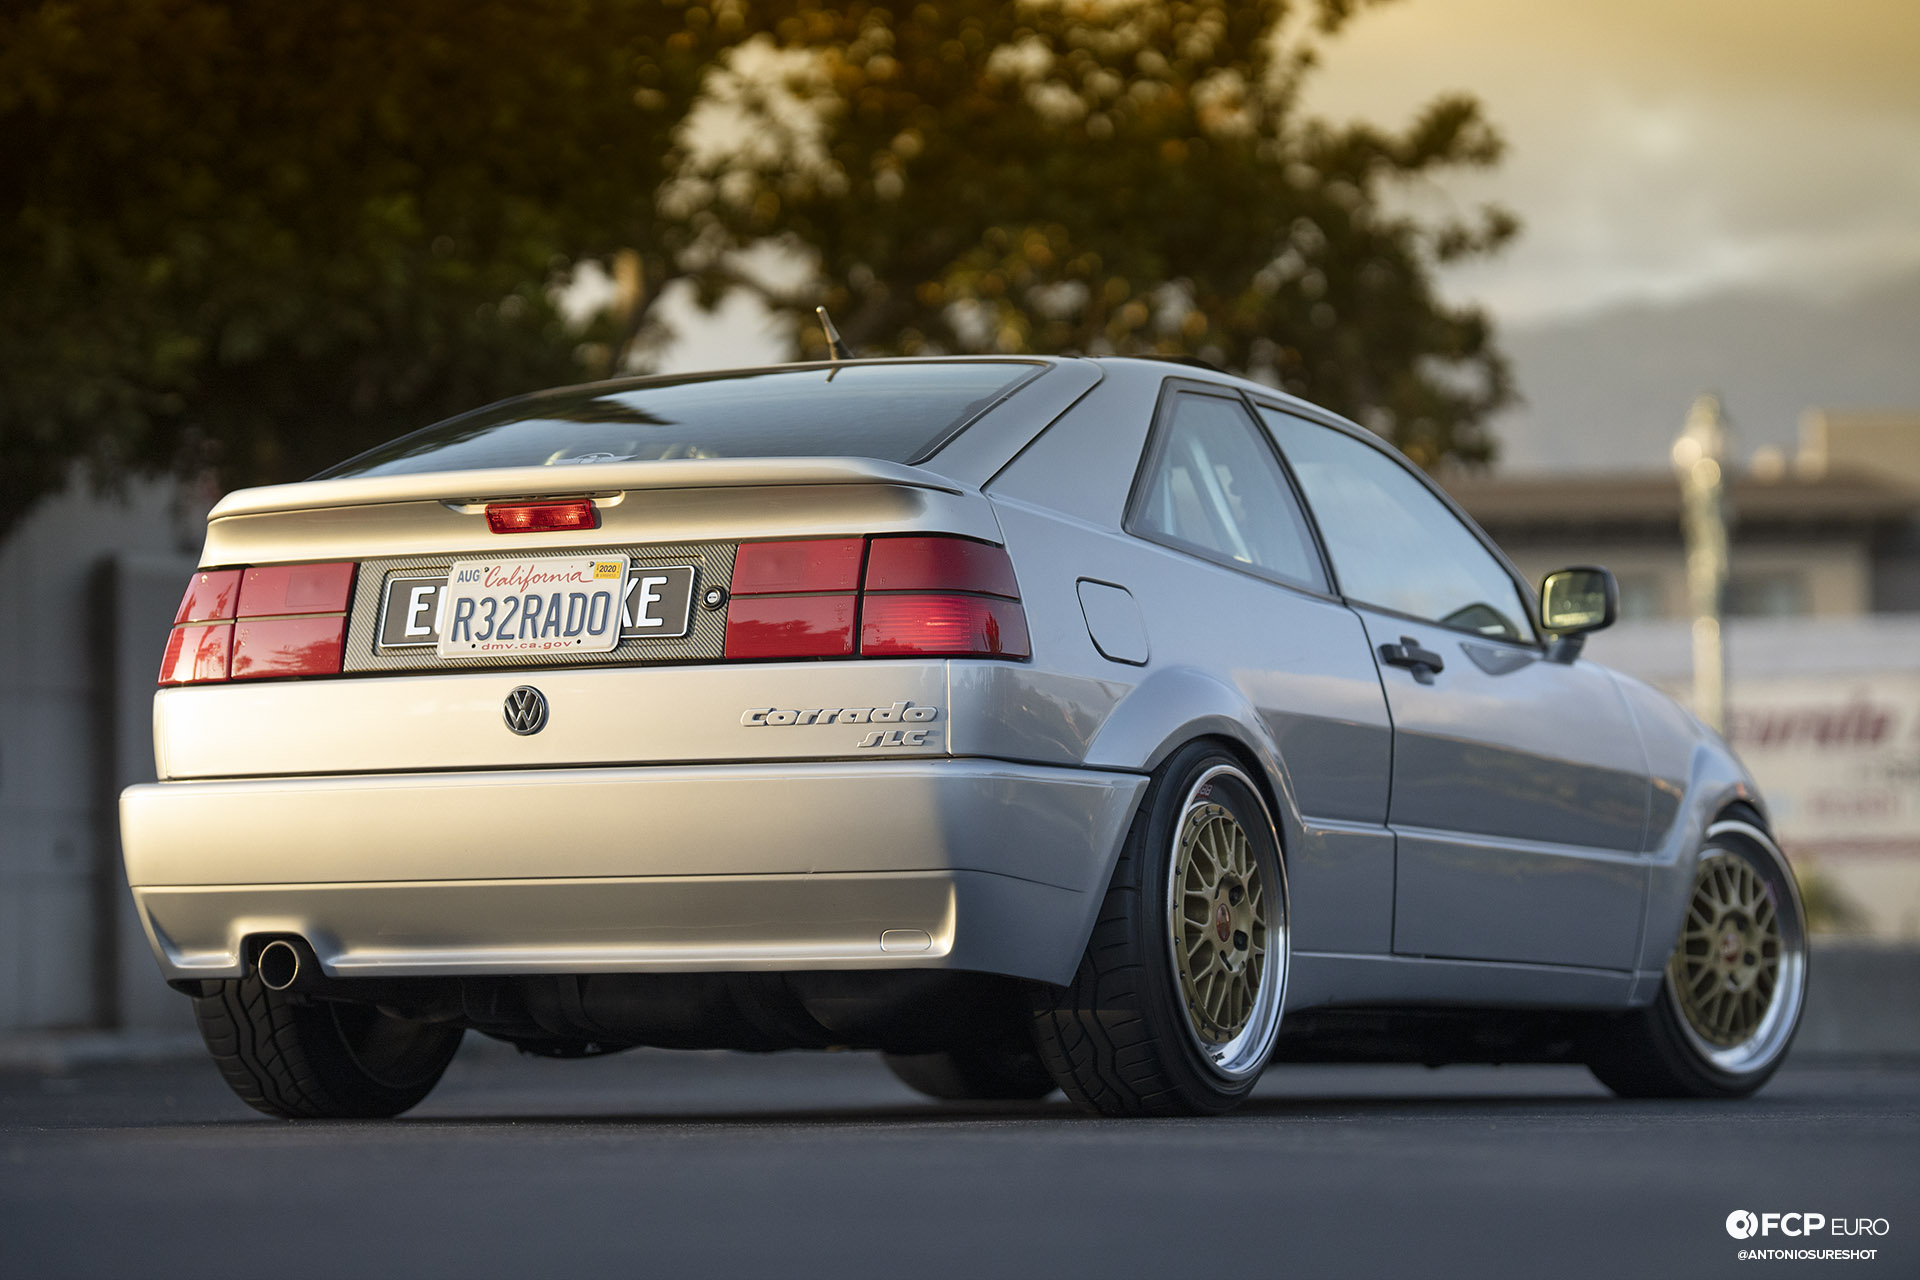 VW Corrado R32 Rear Quarter